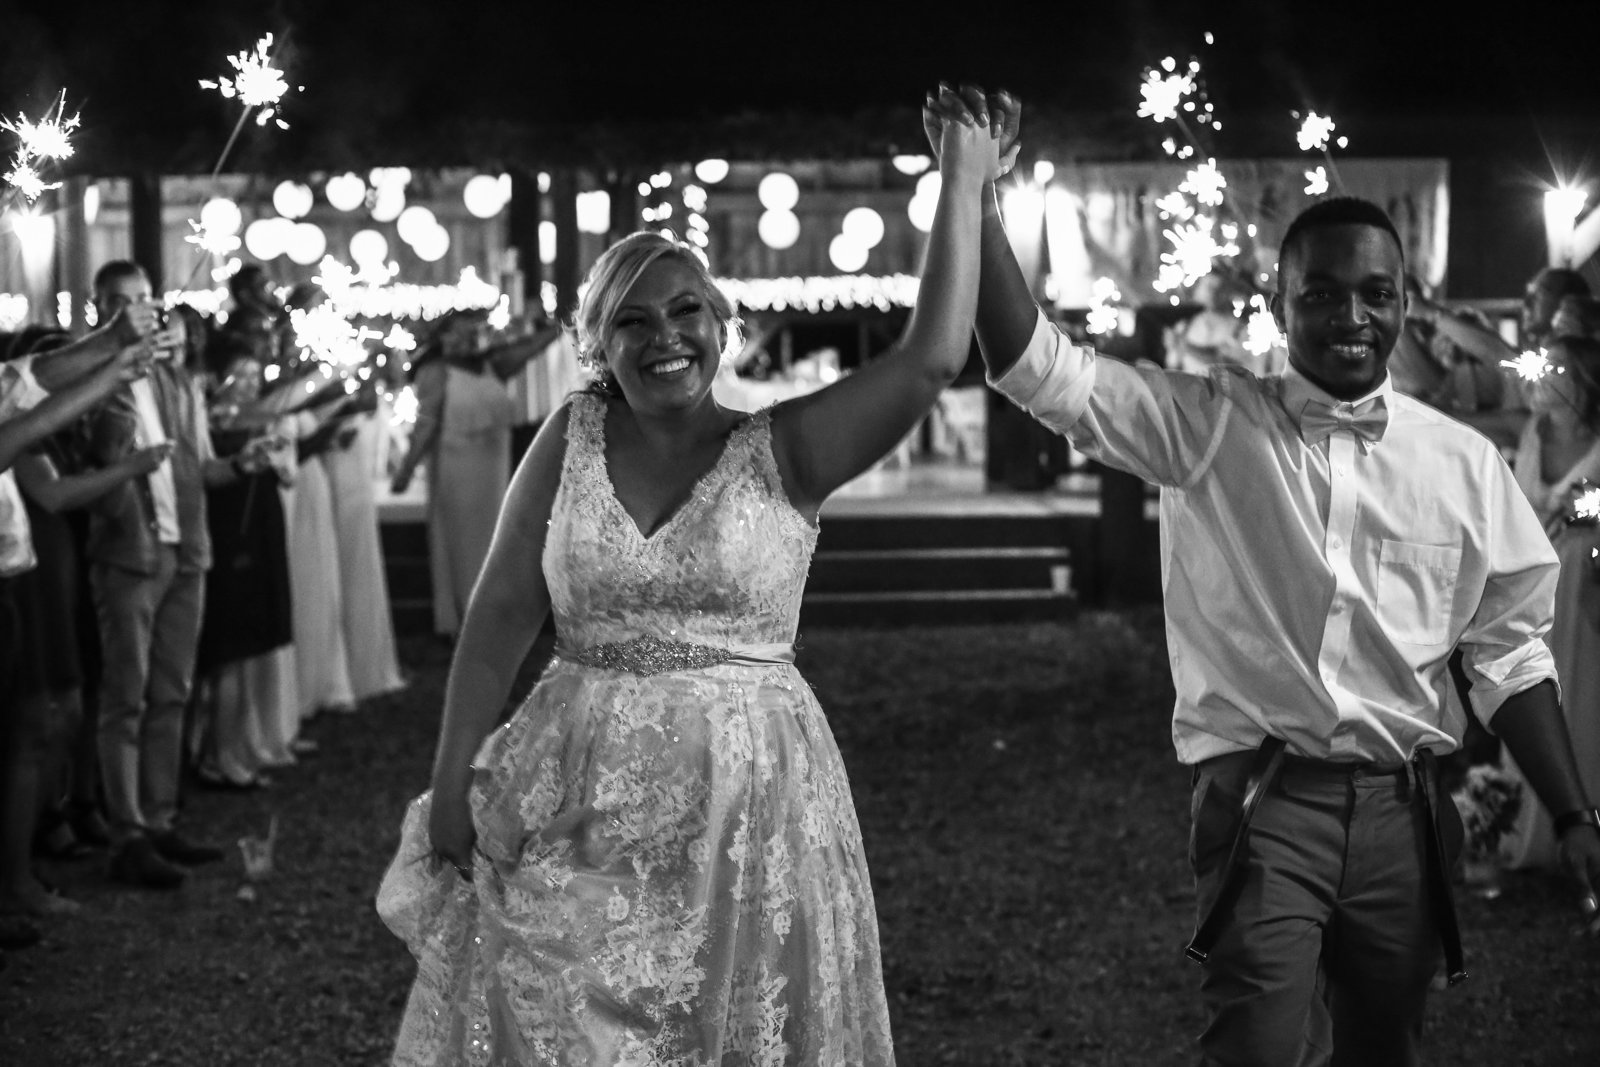 Guests hold sparklers as bride and groom leave Betsy's Barn wedding